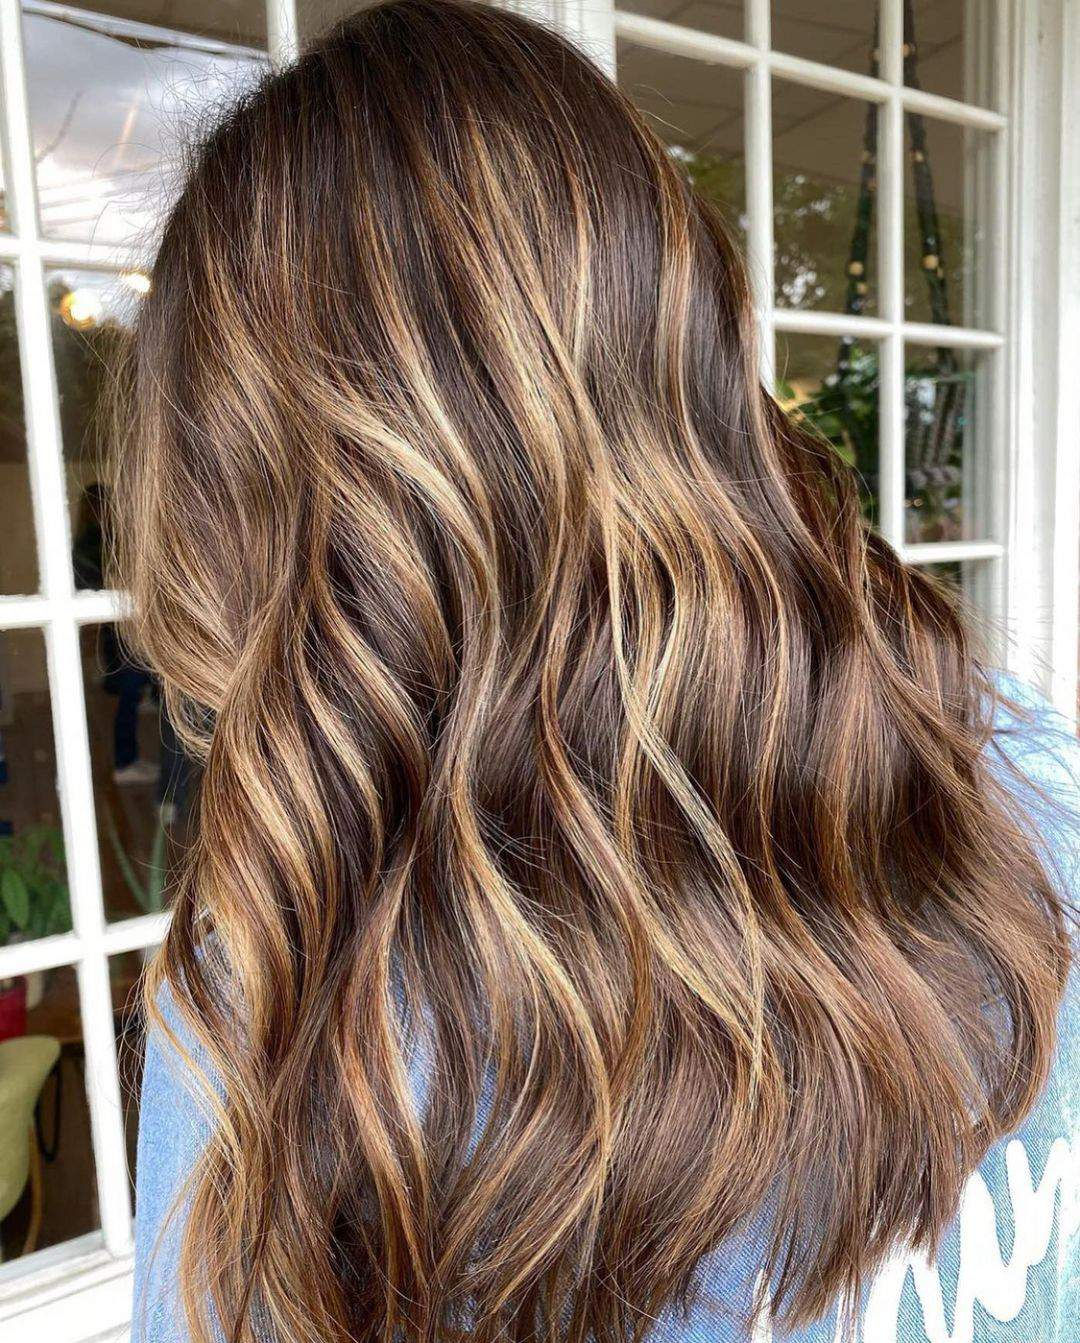 40+ Awesome Hairstyles For Girls With Long Hair images 8